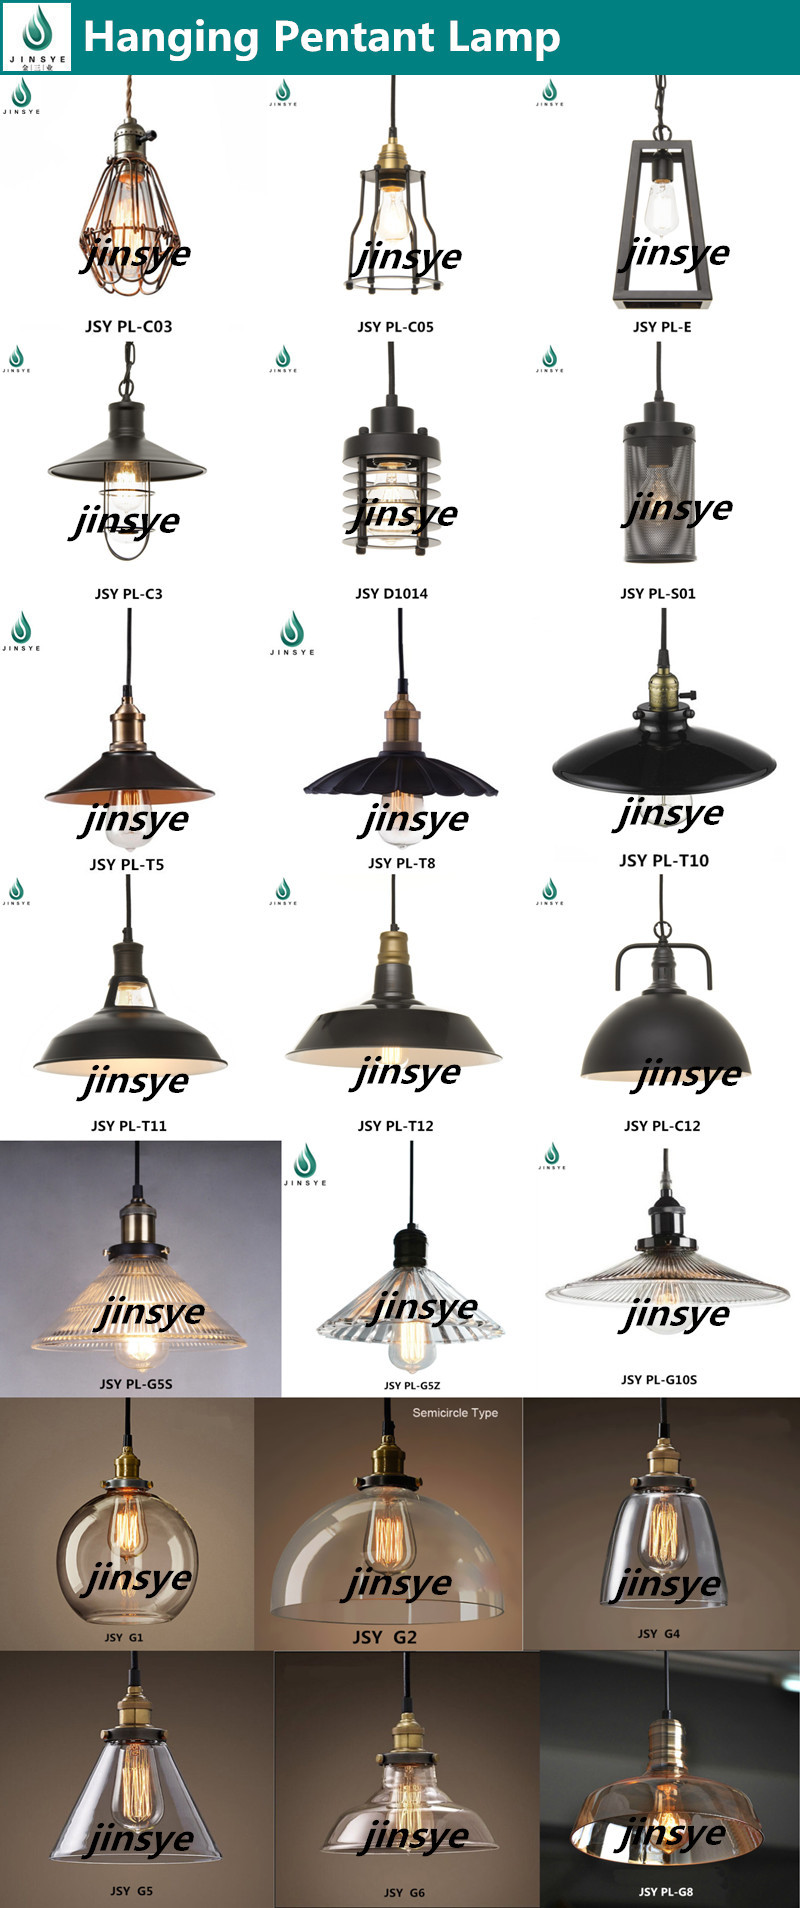 hanging vintage pendant lamp/pendant glass lighting fixtures